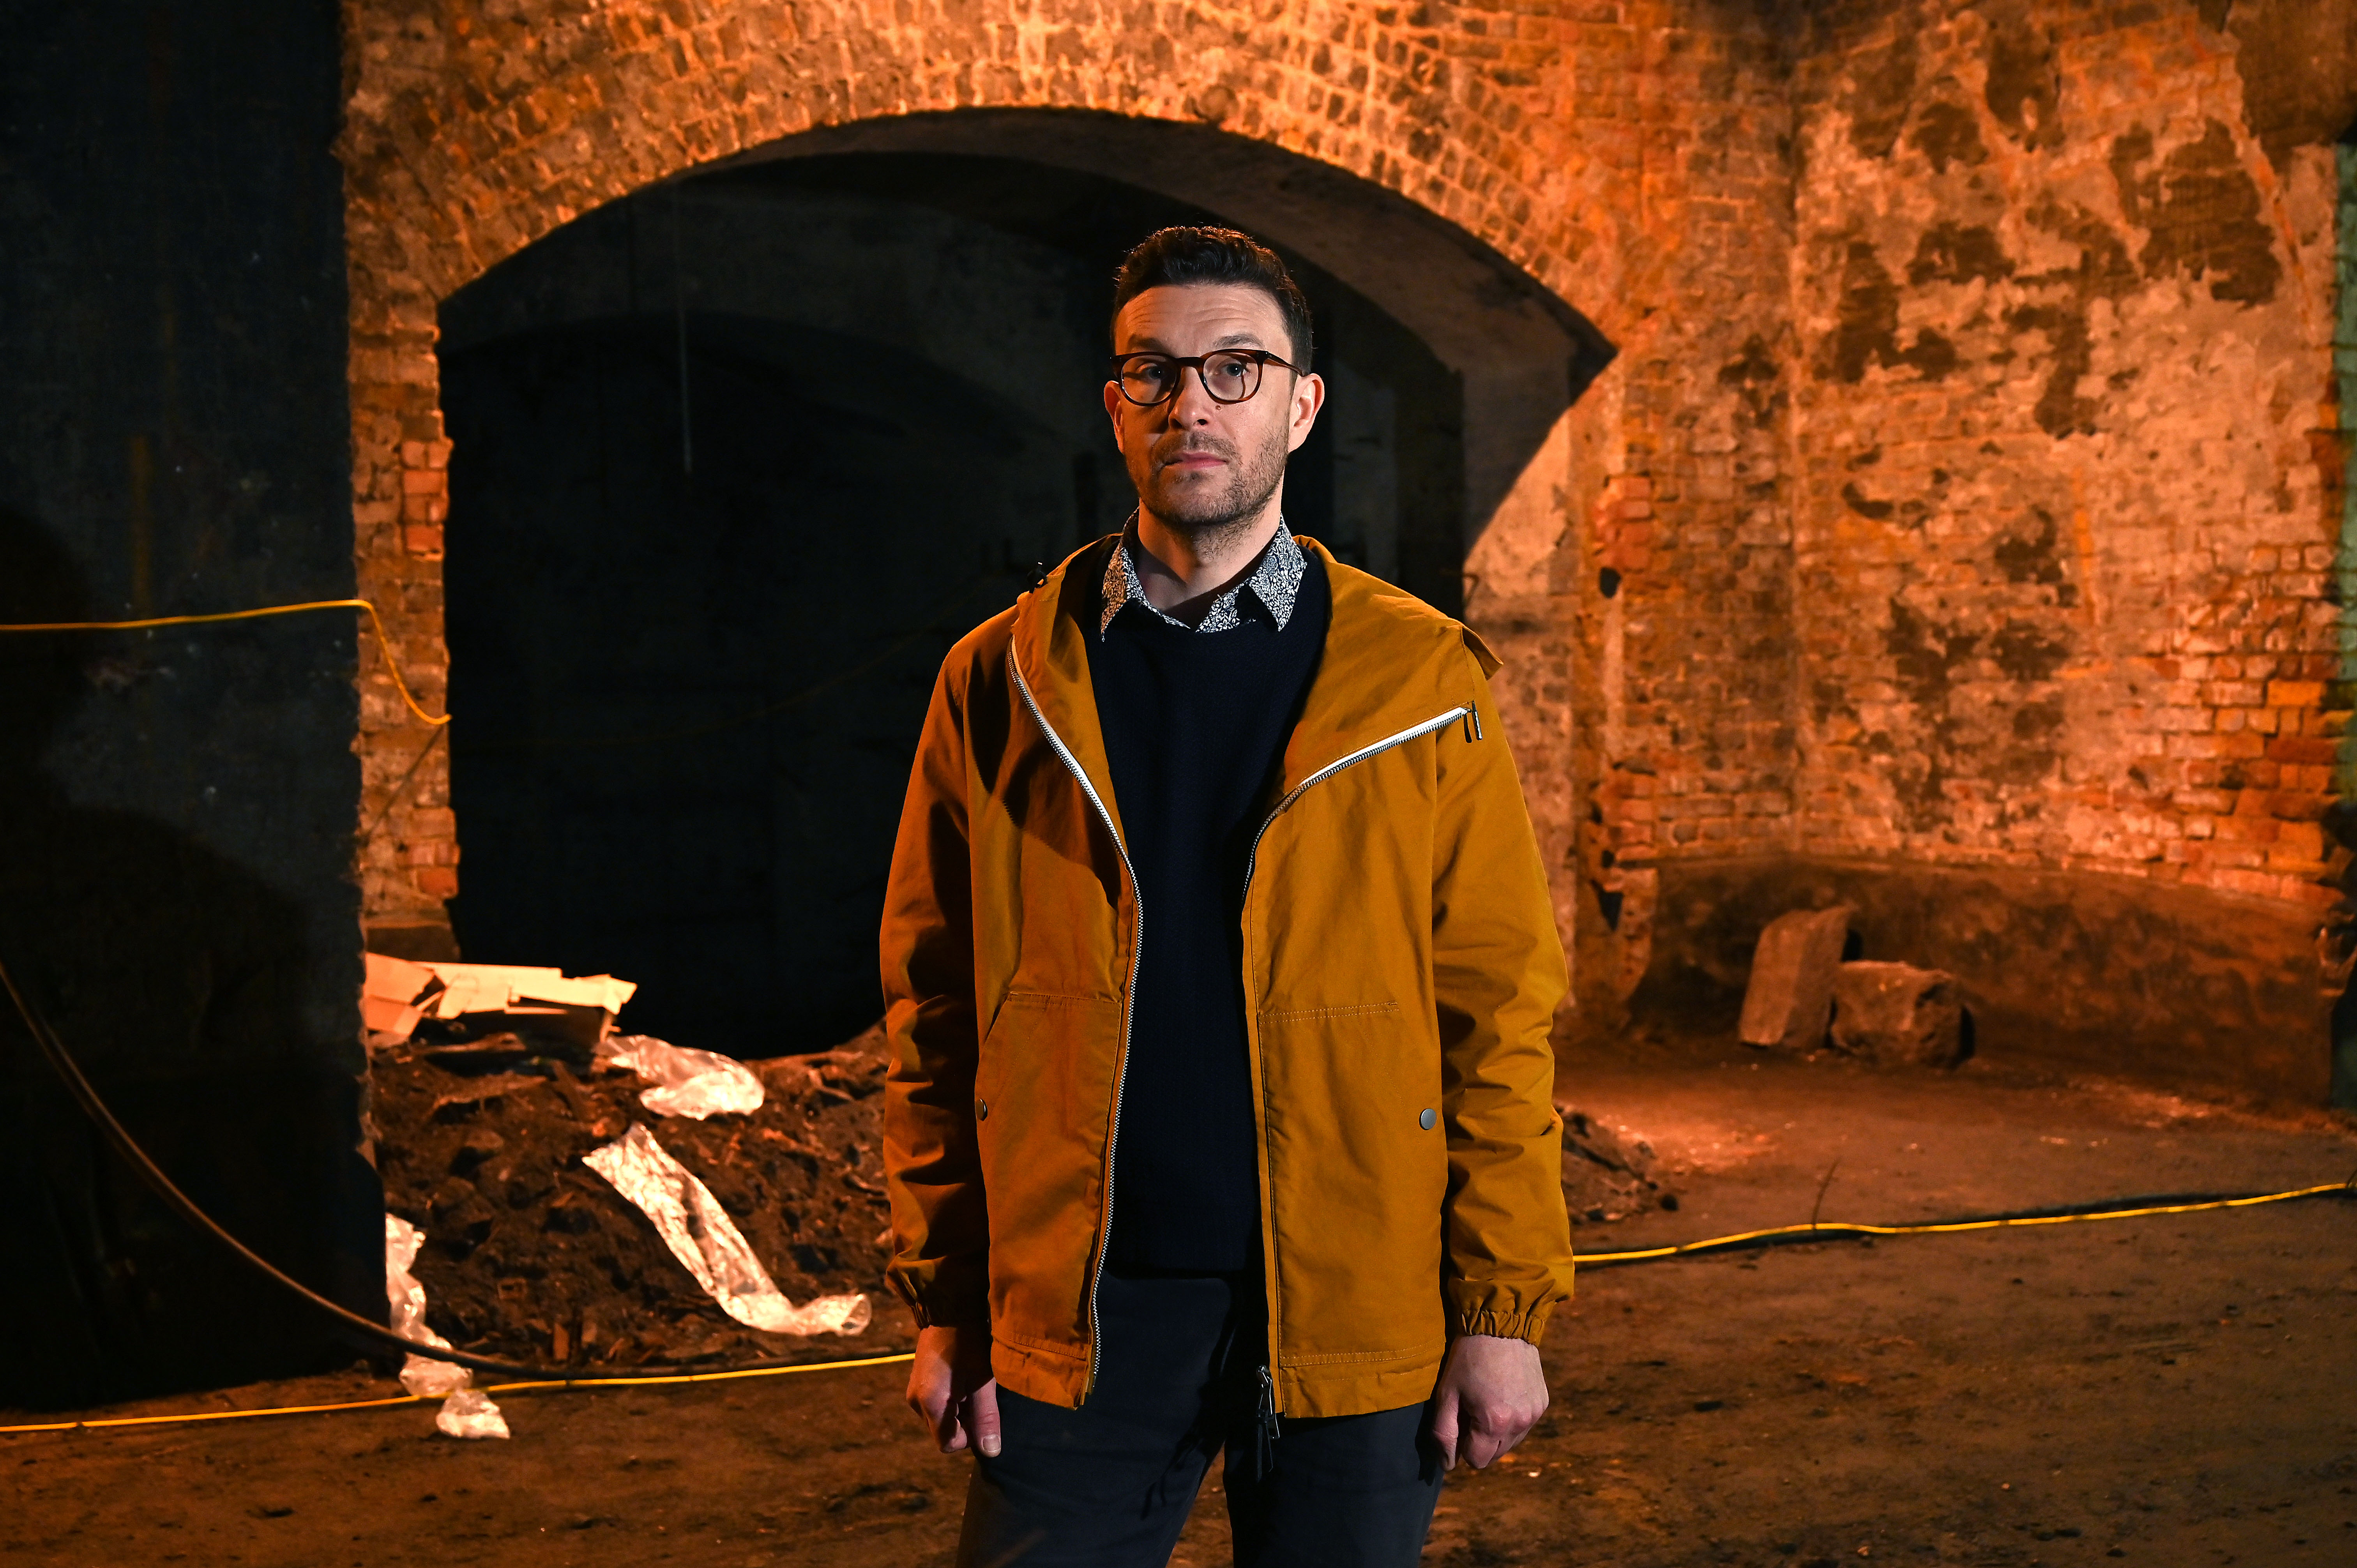 Tom Richards in New Museum of London Subterranean Spaces